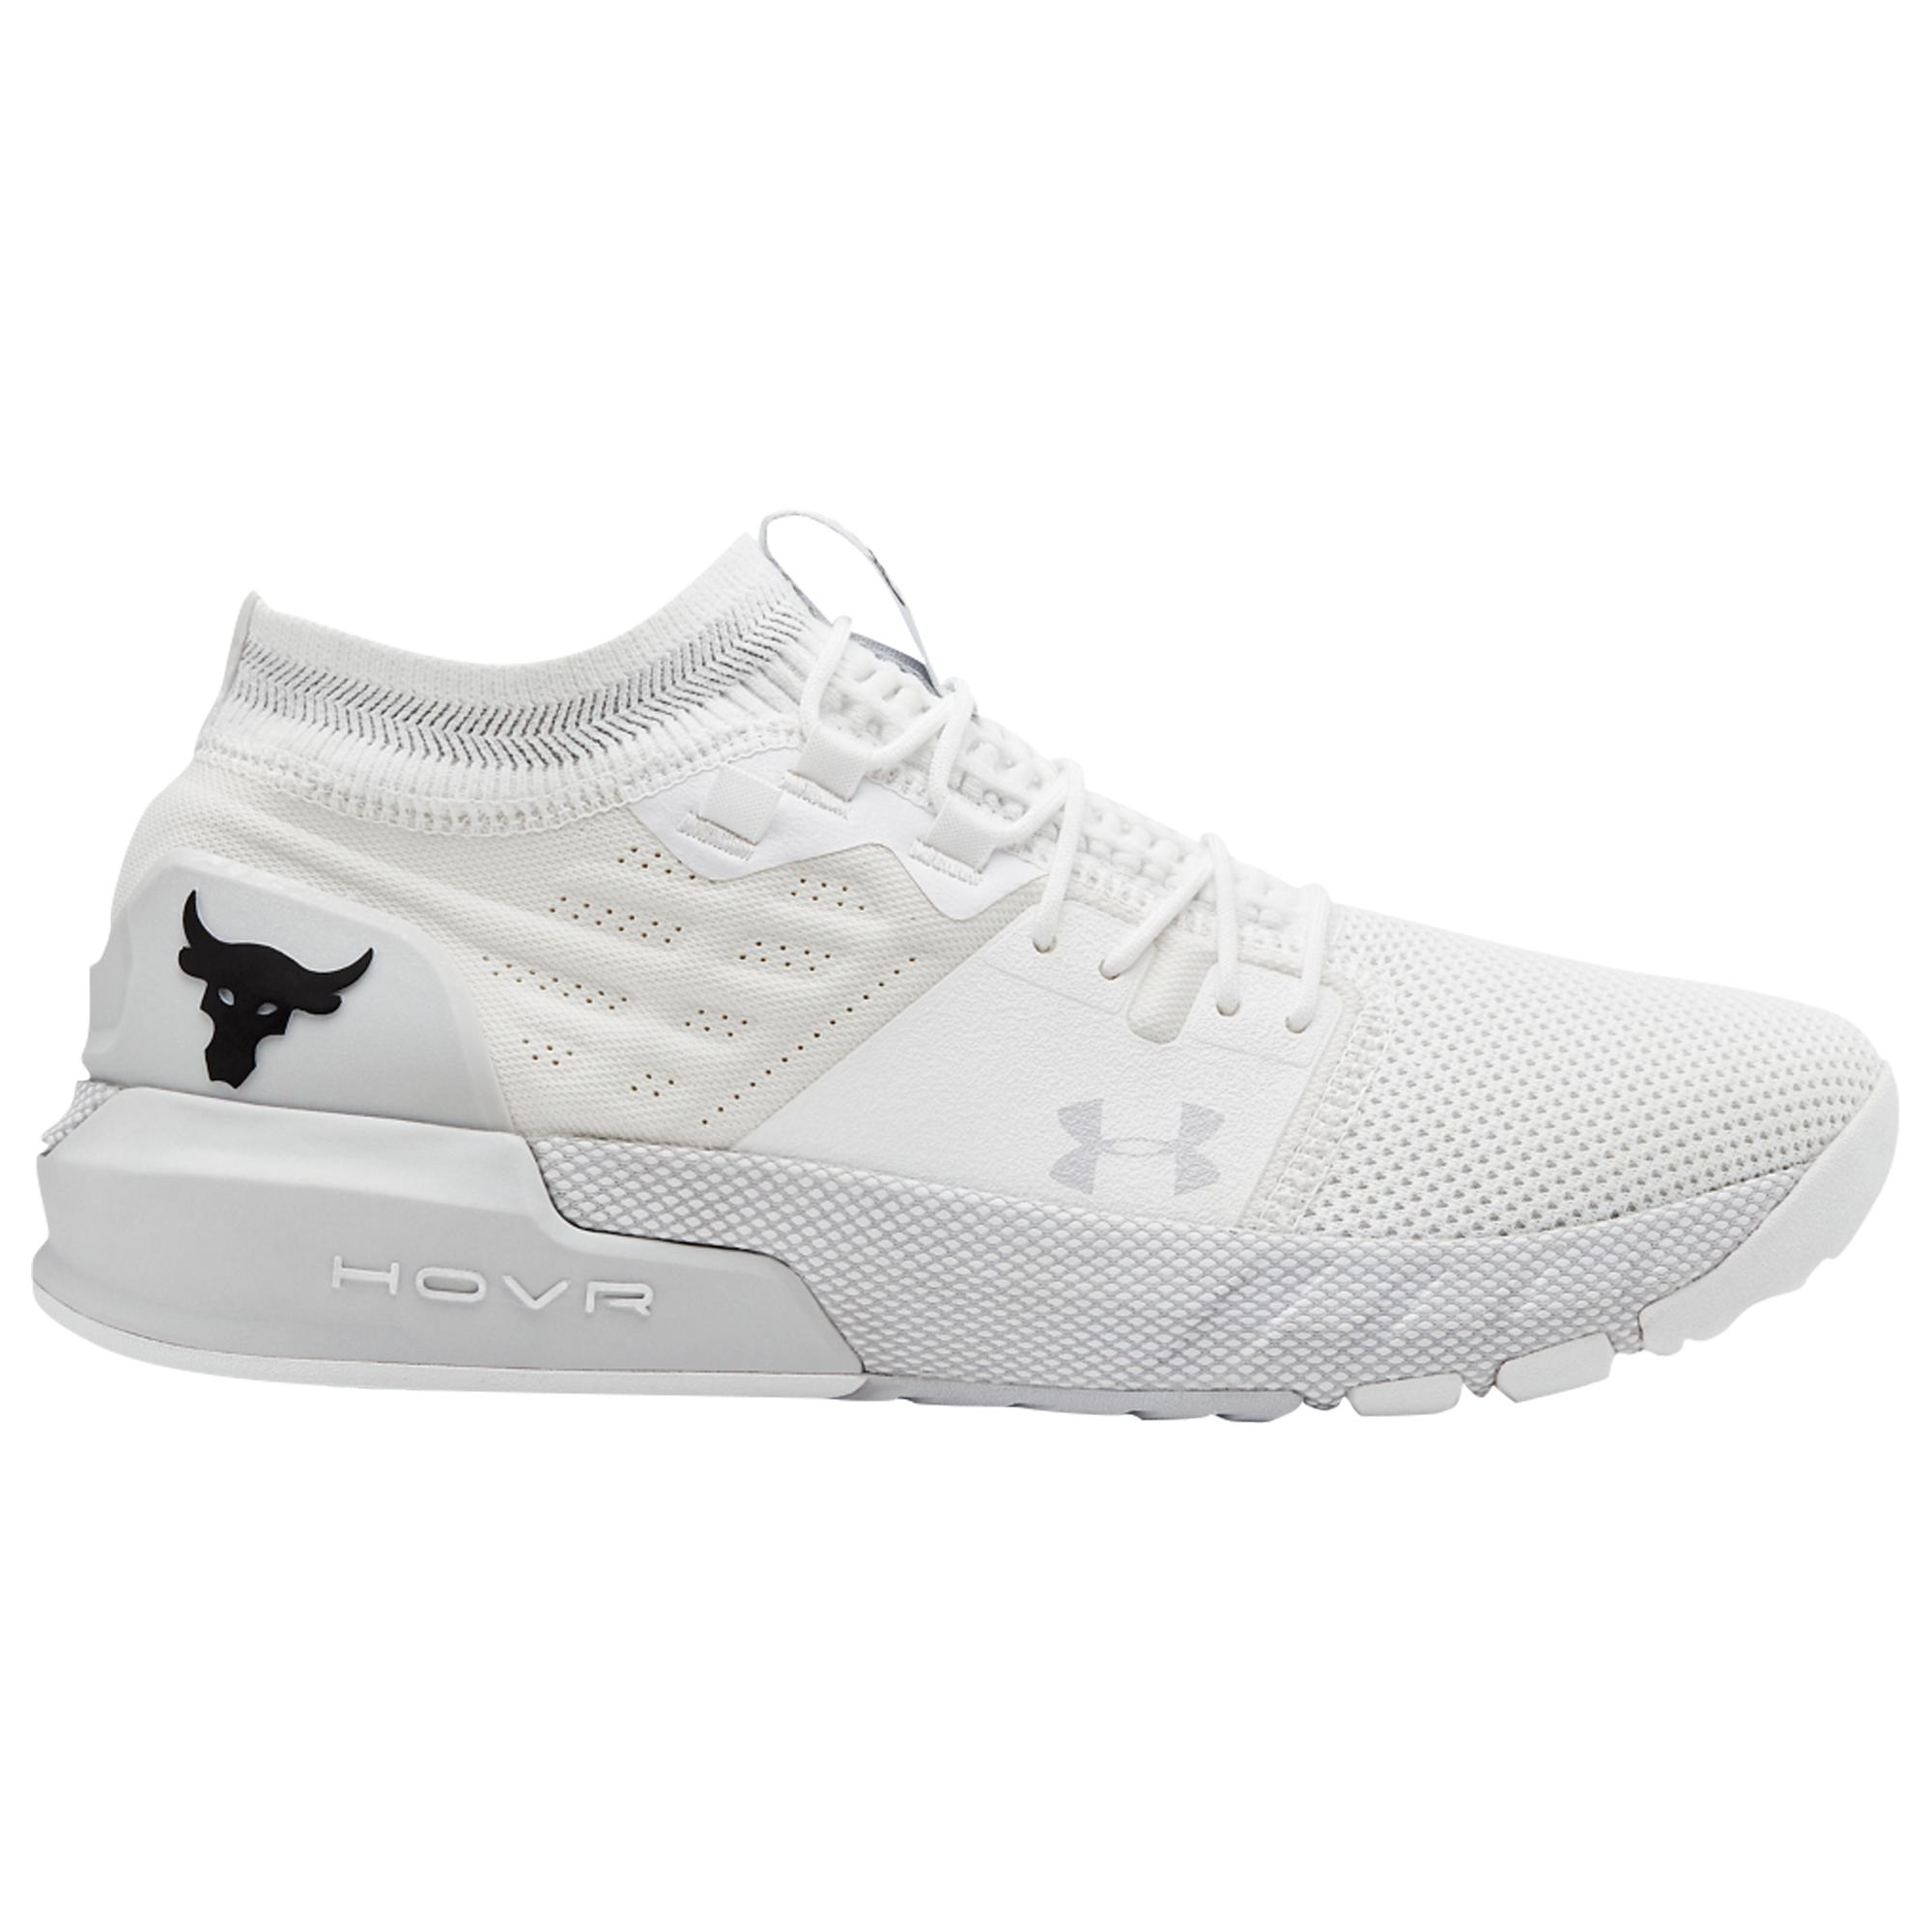 Under Armour Project Rock 2 Training Sneakers Shoes Cross Training US7-11